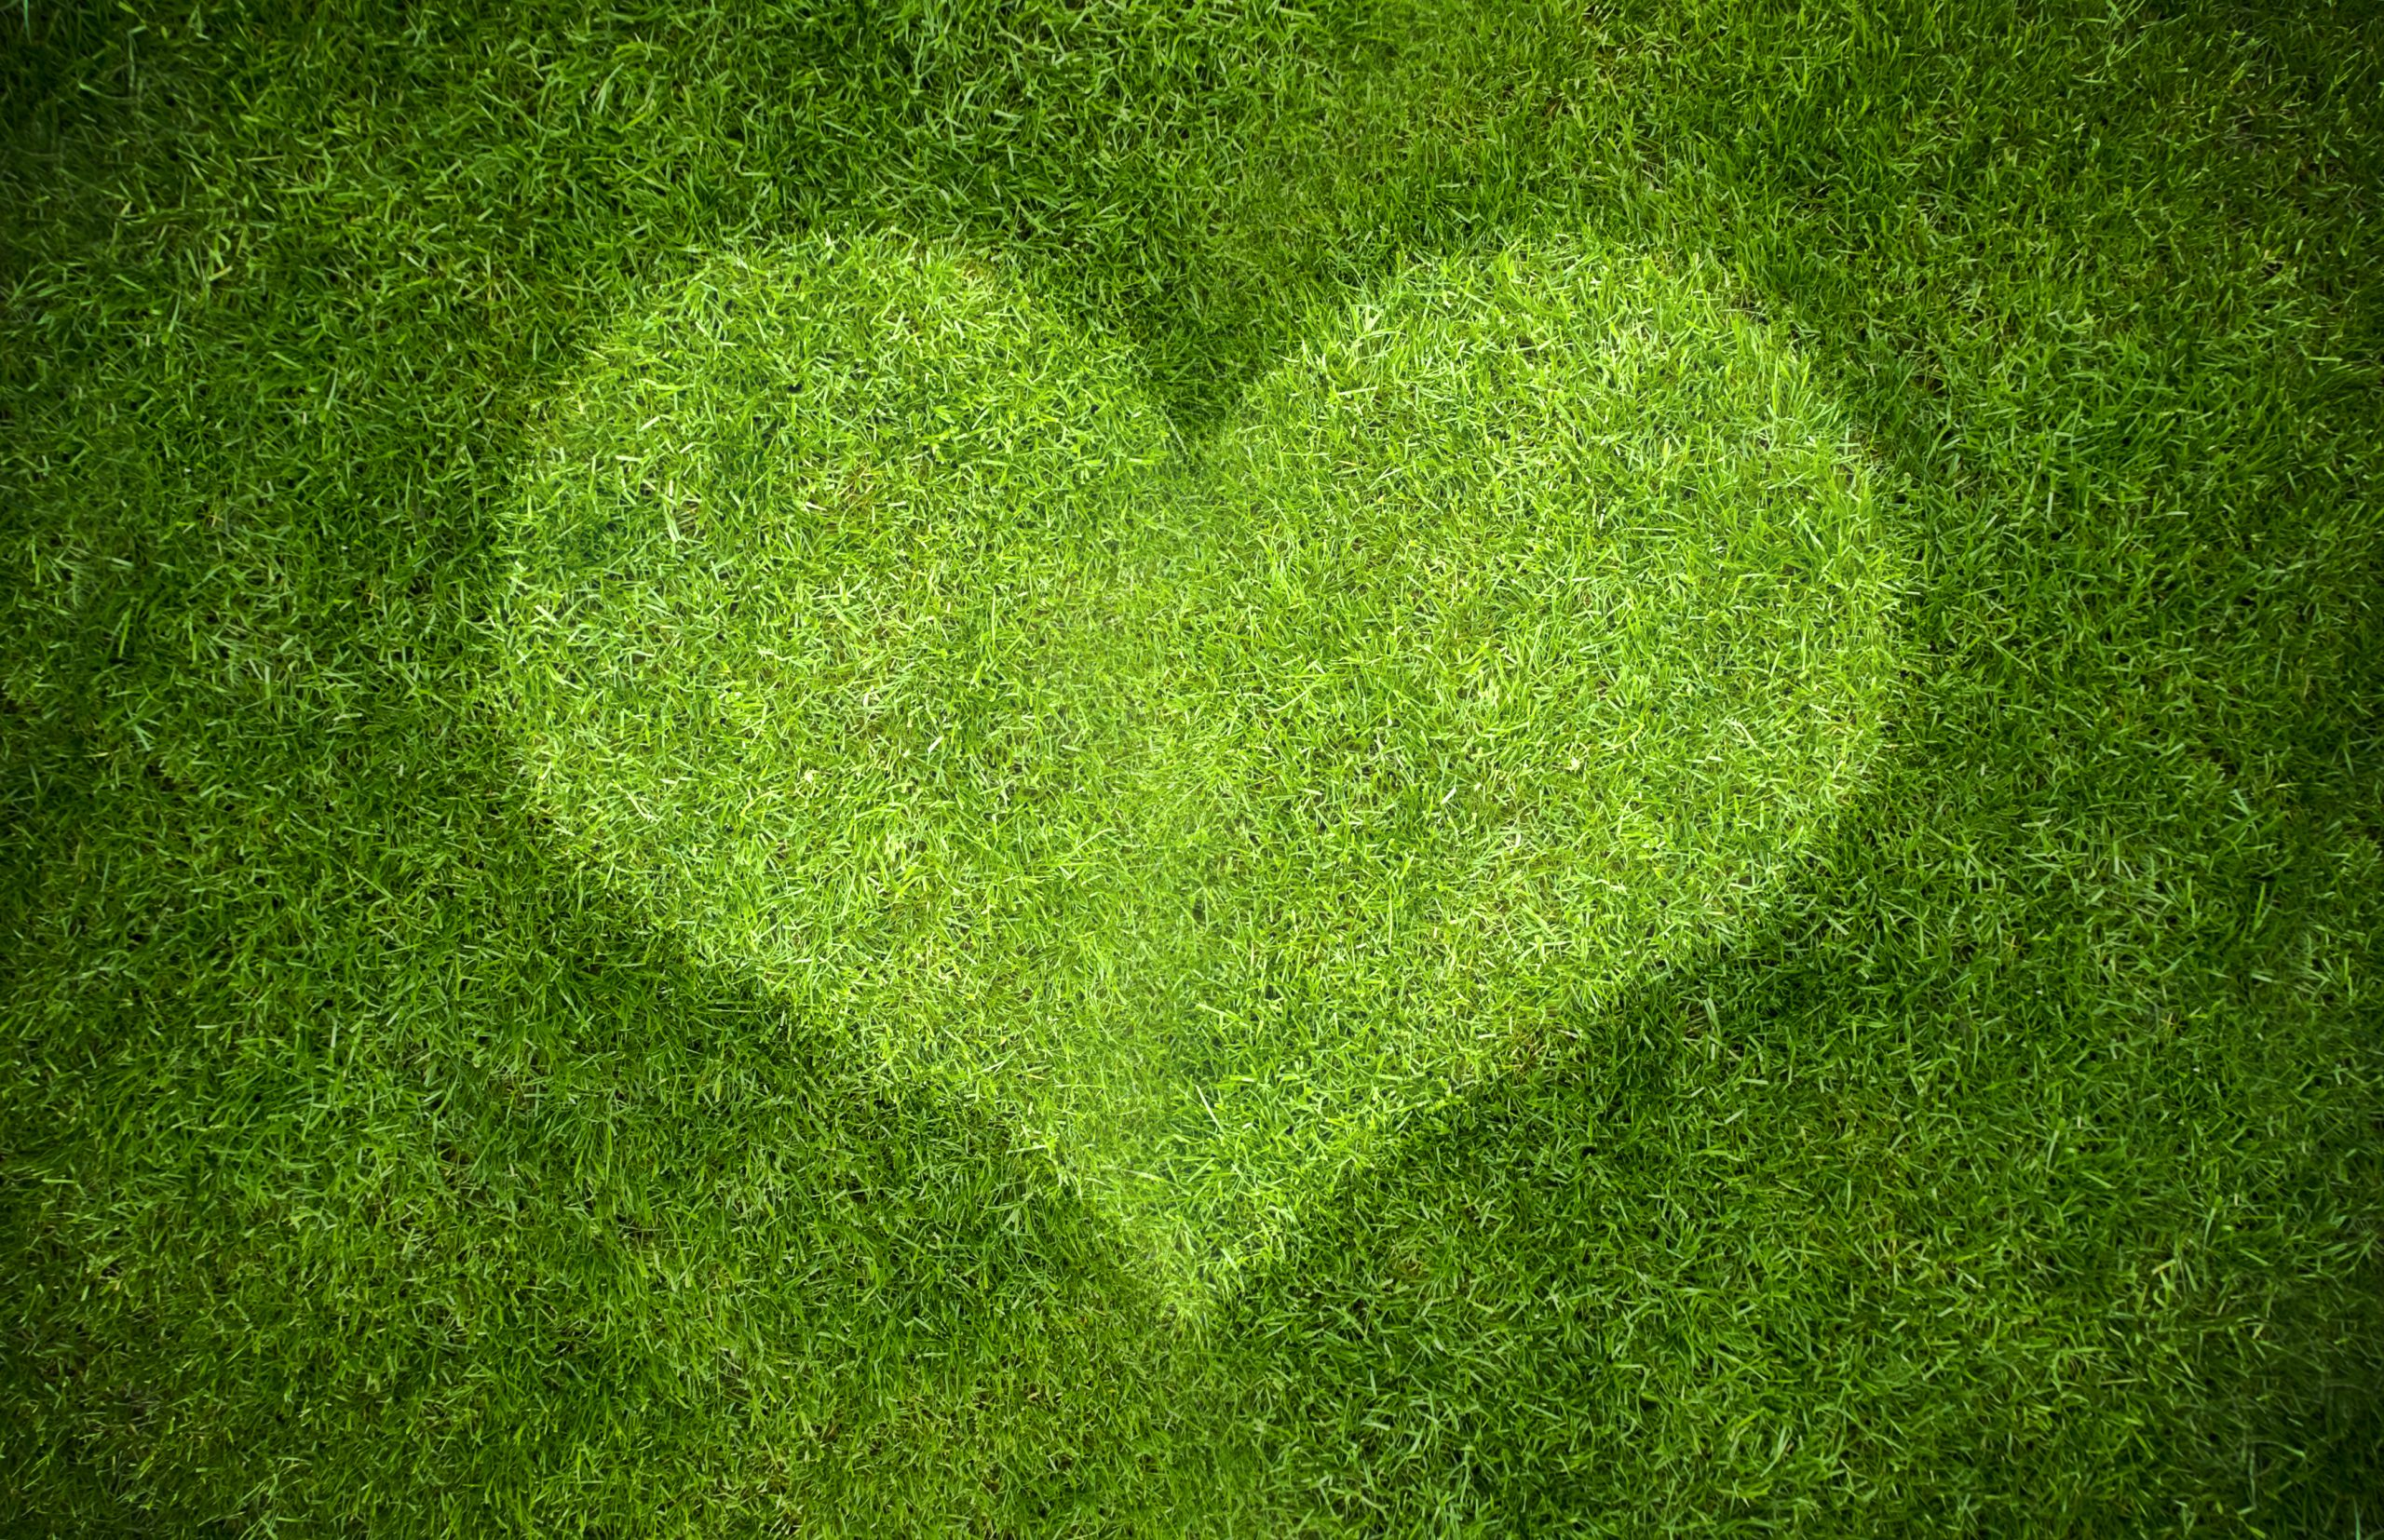 grass with a heart shadow on it